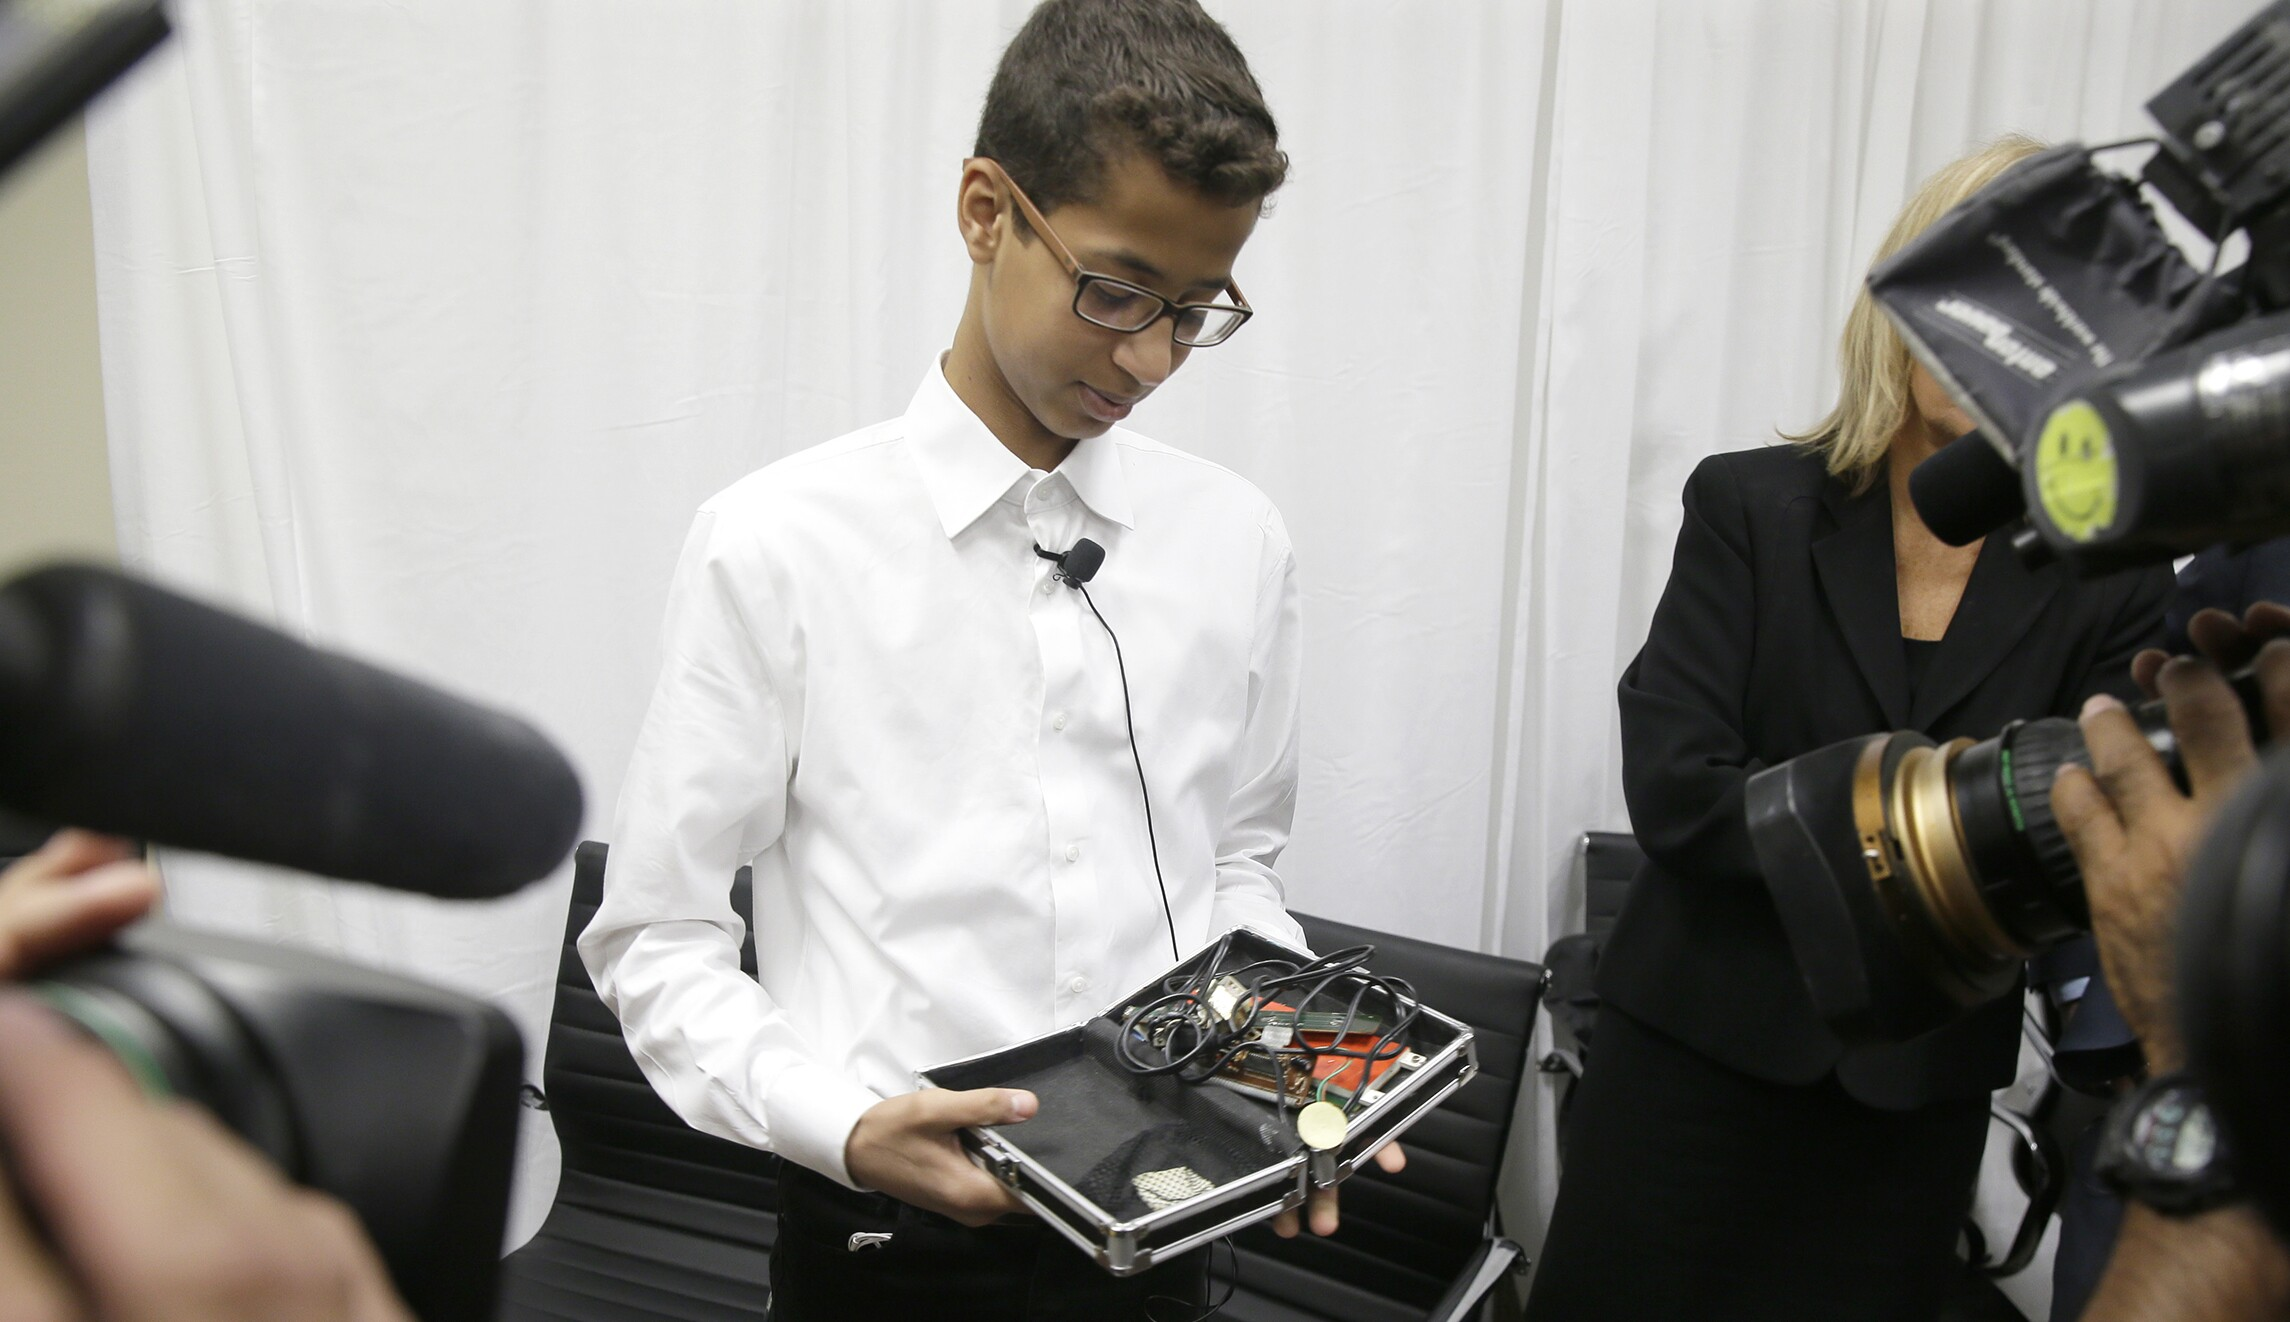 Clockboy' Ahmed Mohamed discrimination lawsuit dismissed